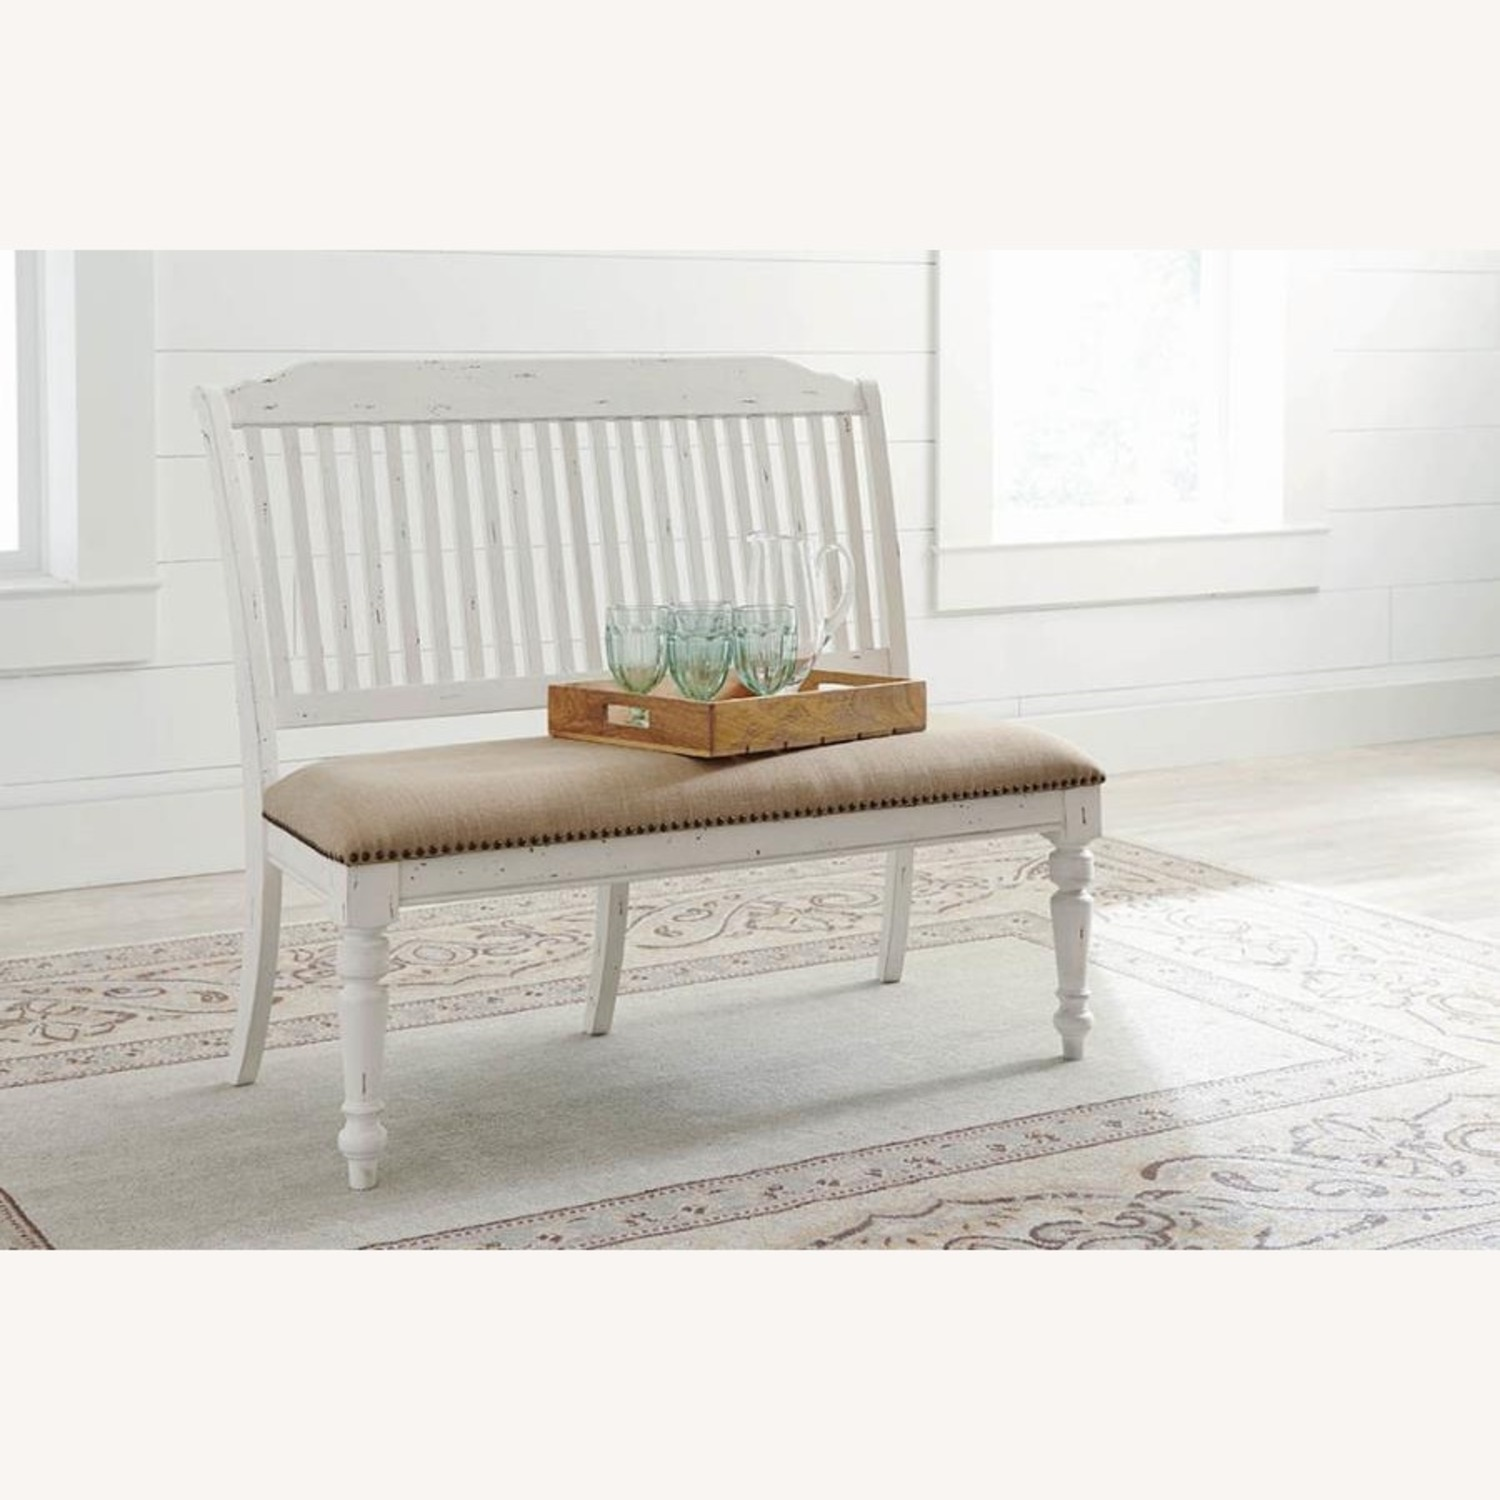 Bench In White Finish W/ Stick-Back Seating - image-5